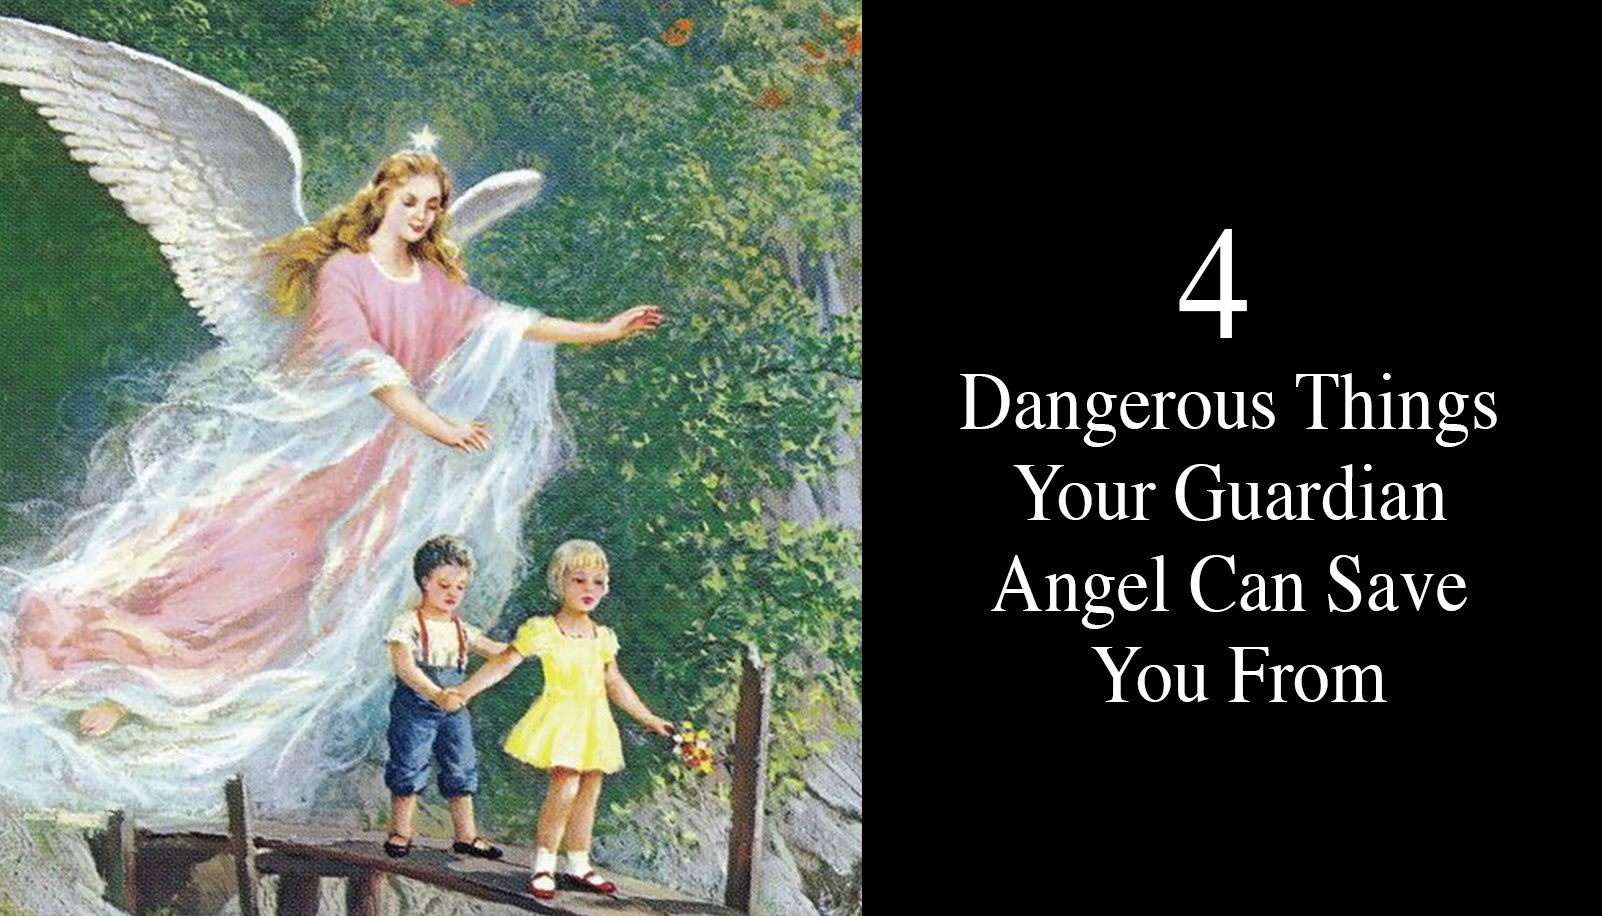 4-Dangerous-Things-Your-Guardian-Angel-Can-Save-You-From-2